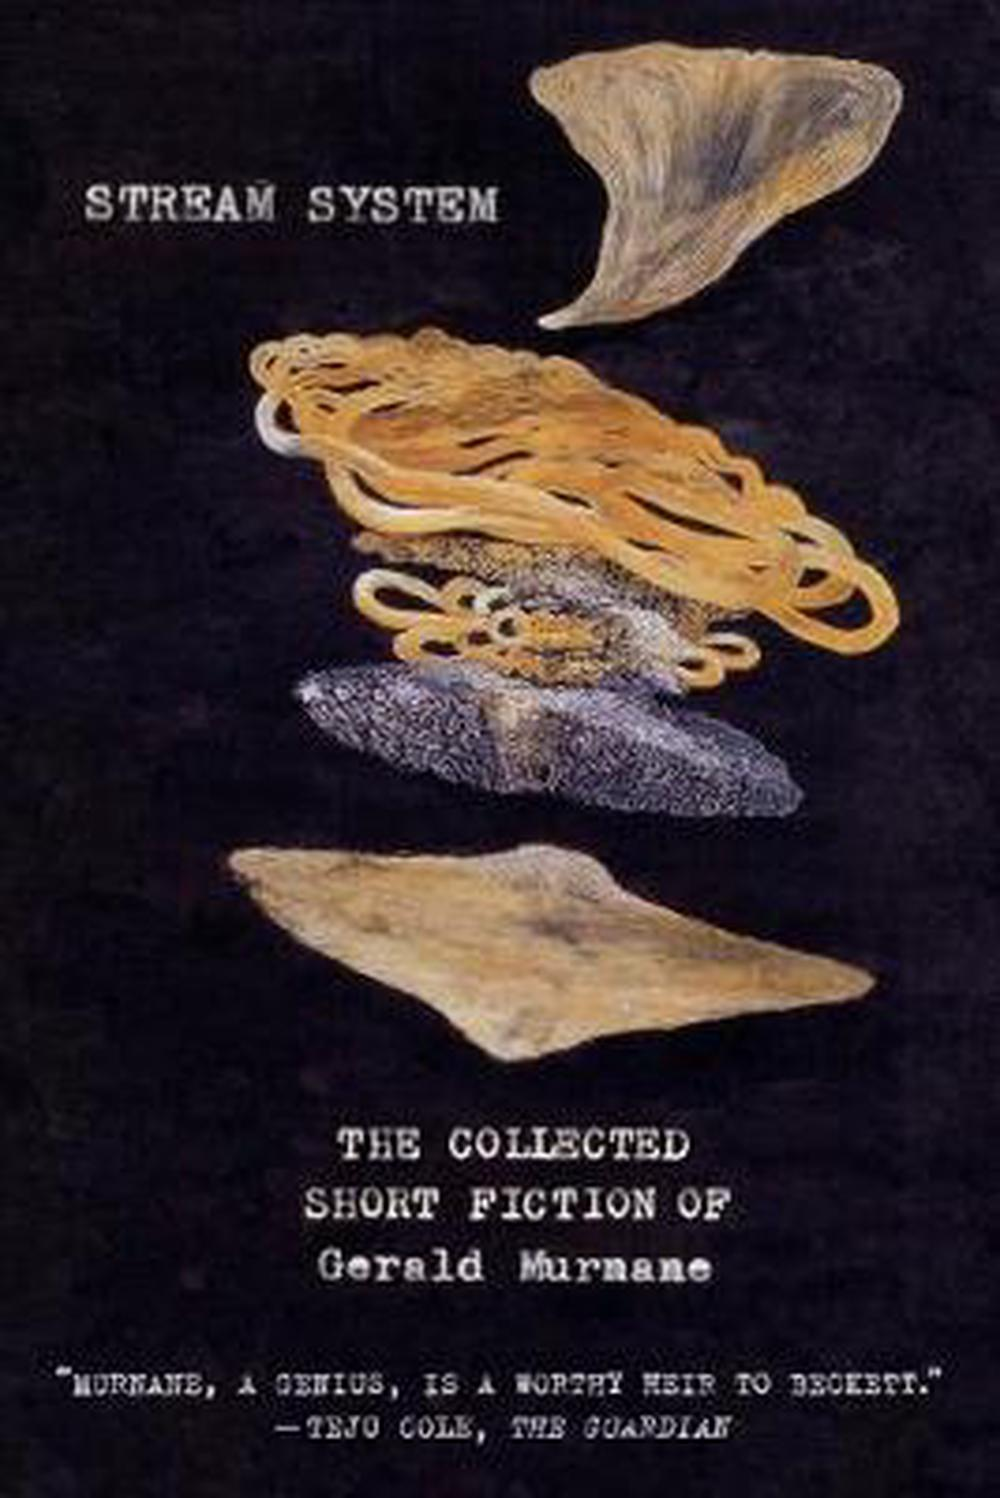 Stream System: The Collected Short Fiction of Gerald Murnane